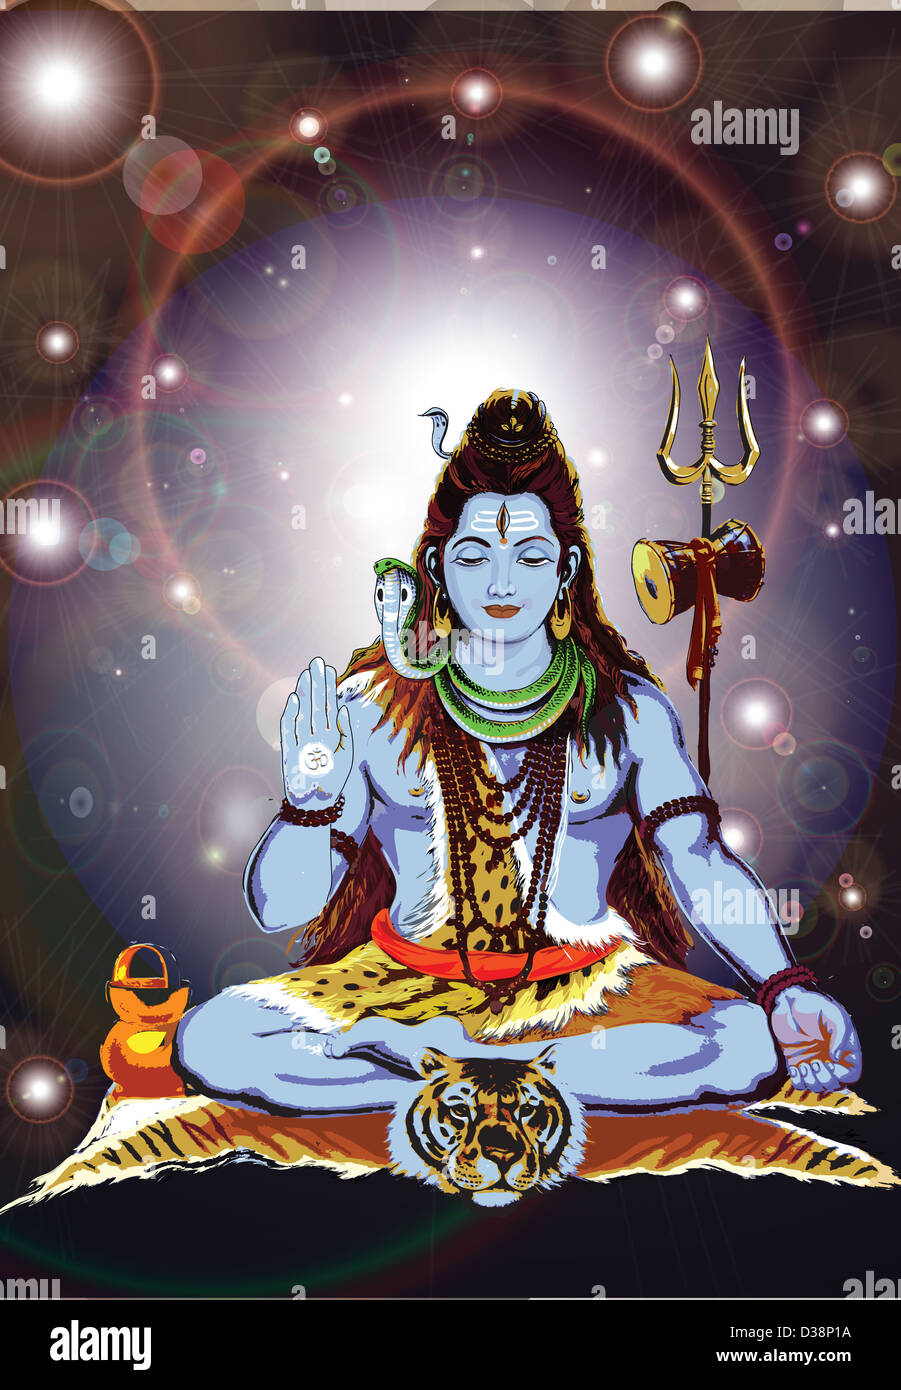 Hindu god Shiva - Stock Image